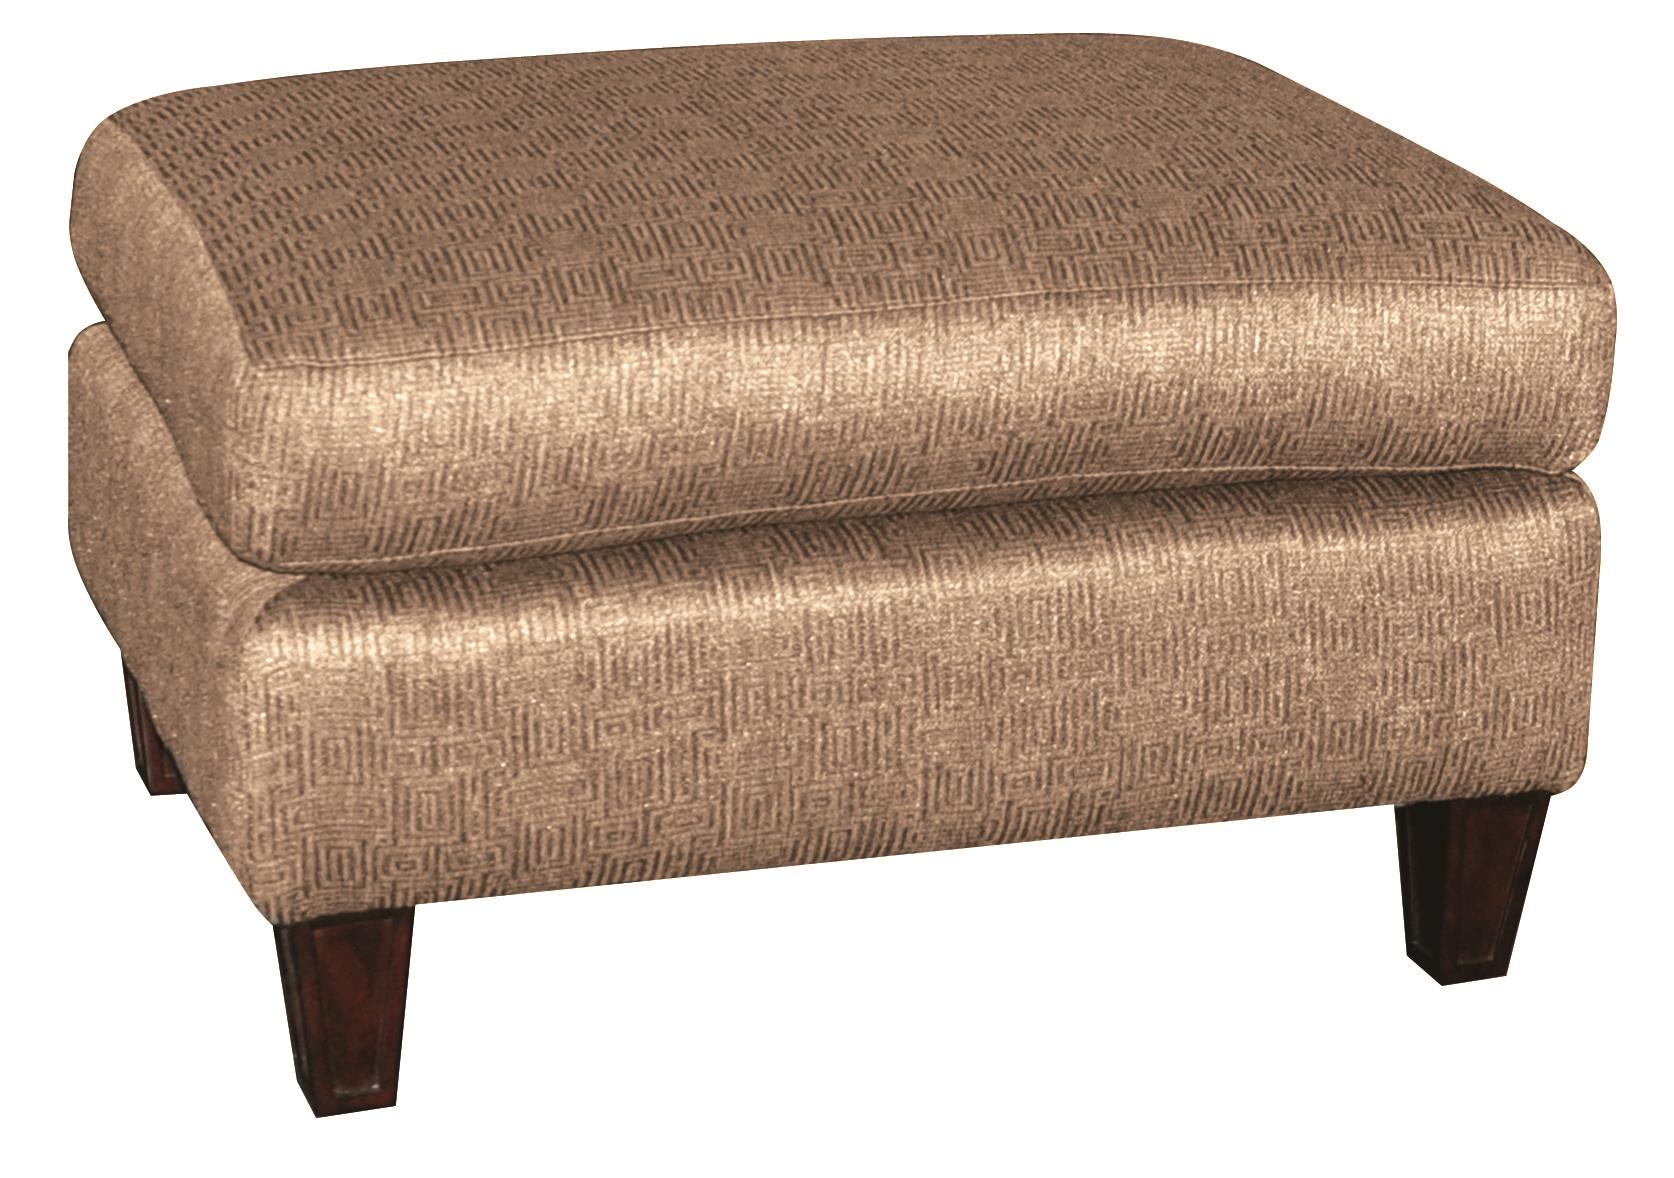 Digsby Digsby Ottoman by Craftmaster at Morris Home